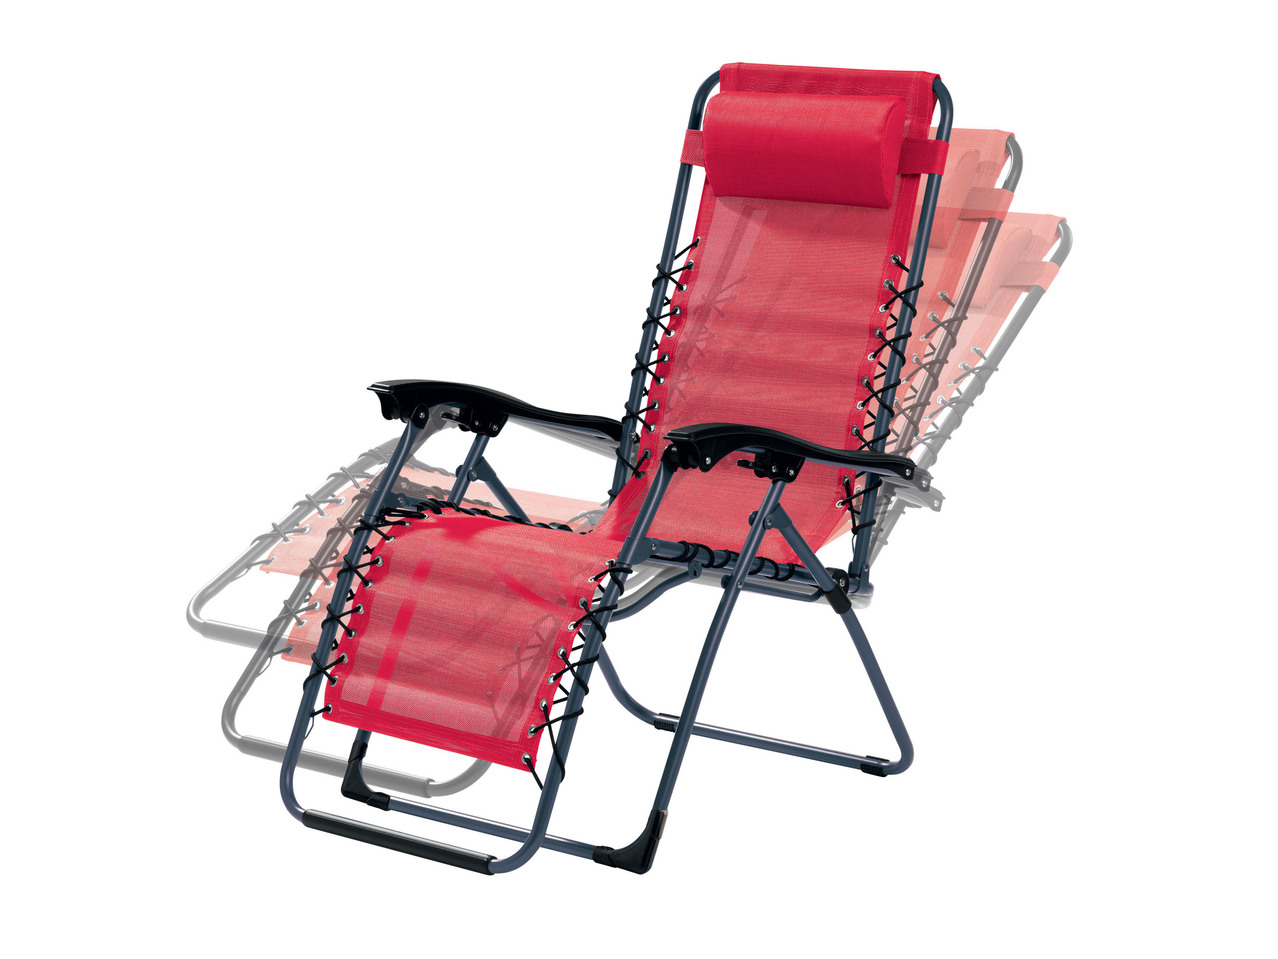 Sedia Relax Lidl Reclining Chair Charcoal Or Red Lidl Malta Specials Archive